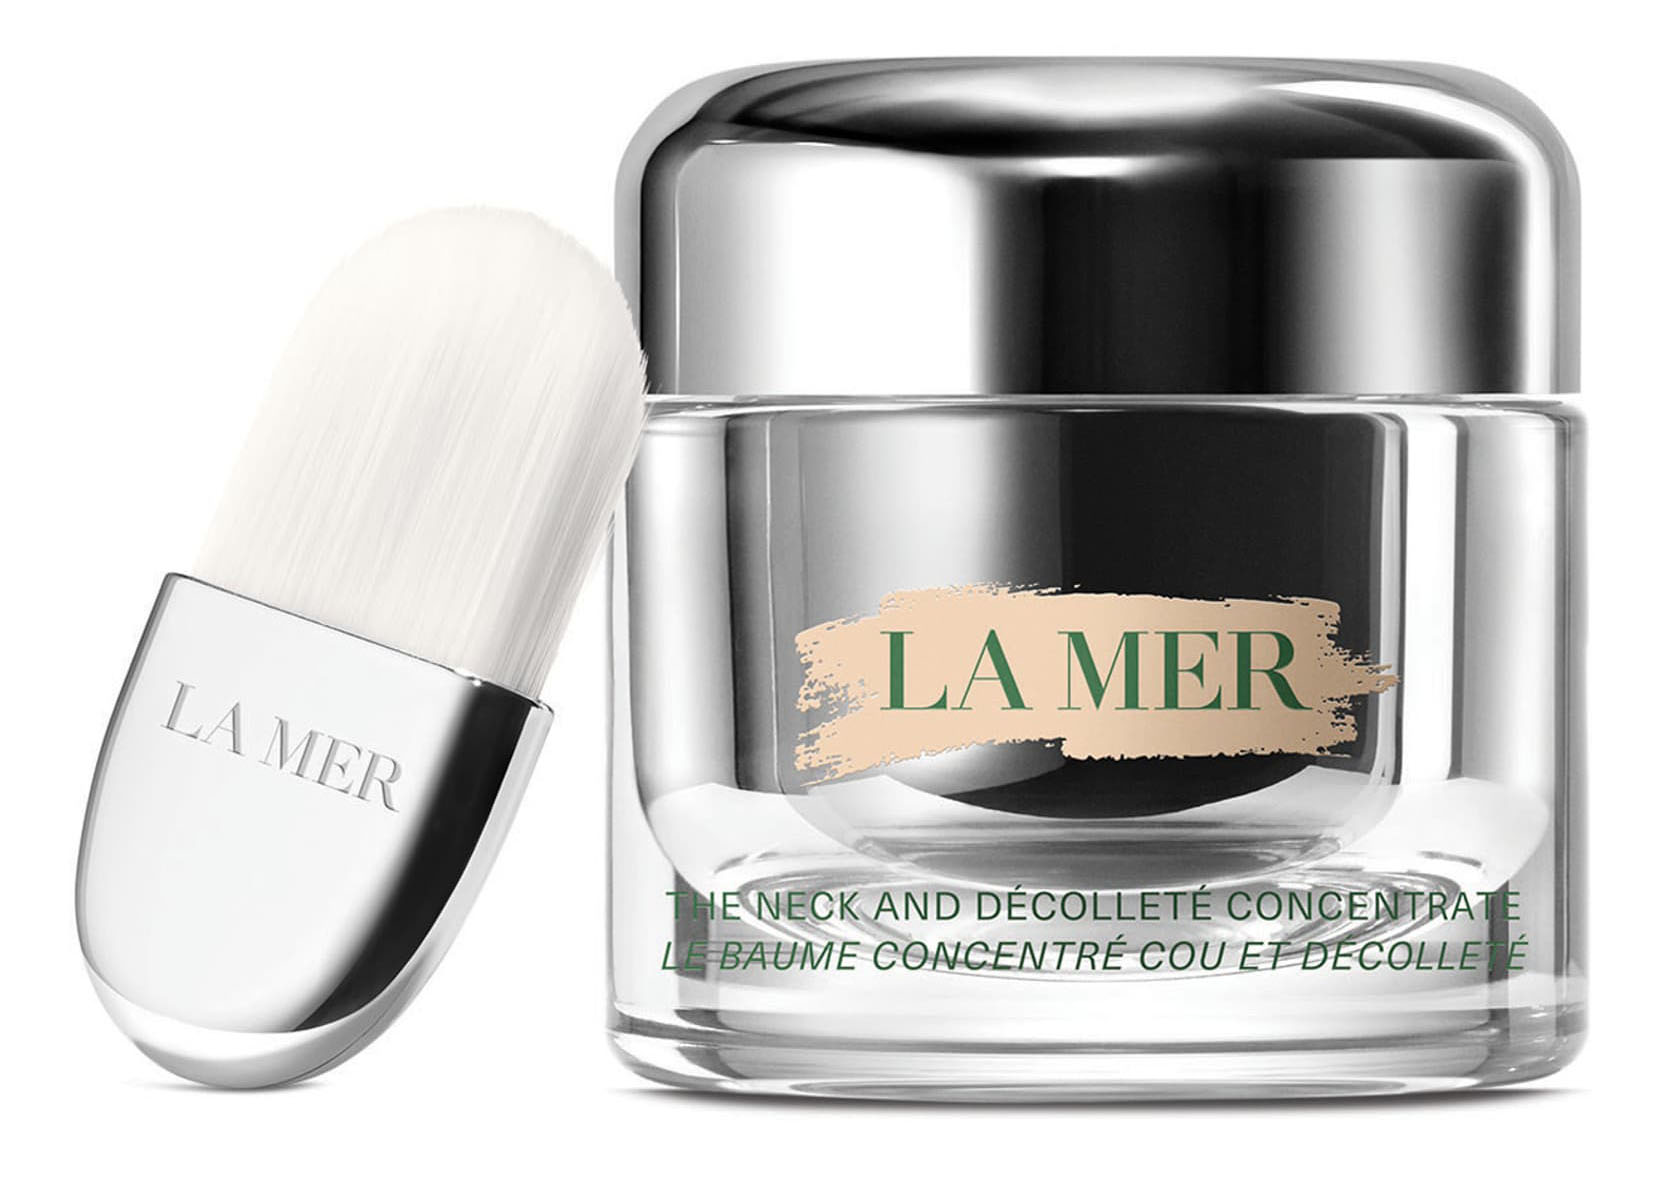 La Mer The Neck and Decolete Concentrate